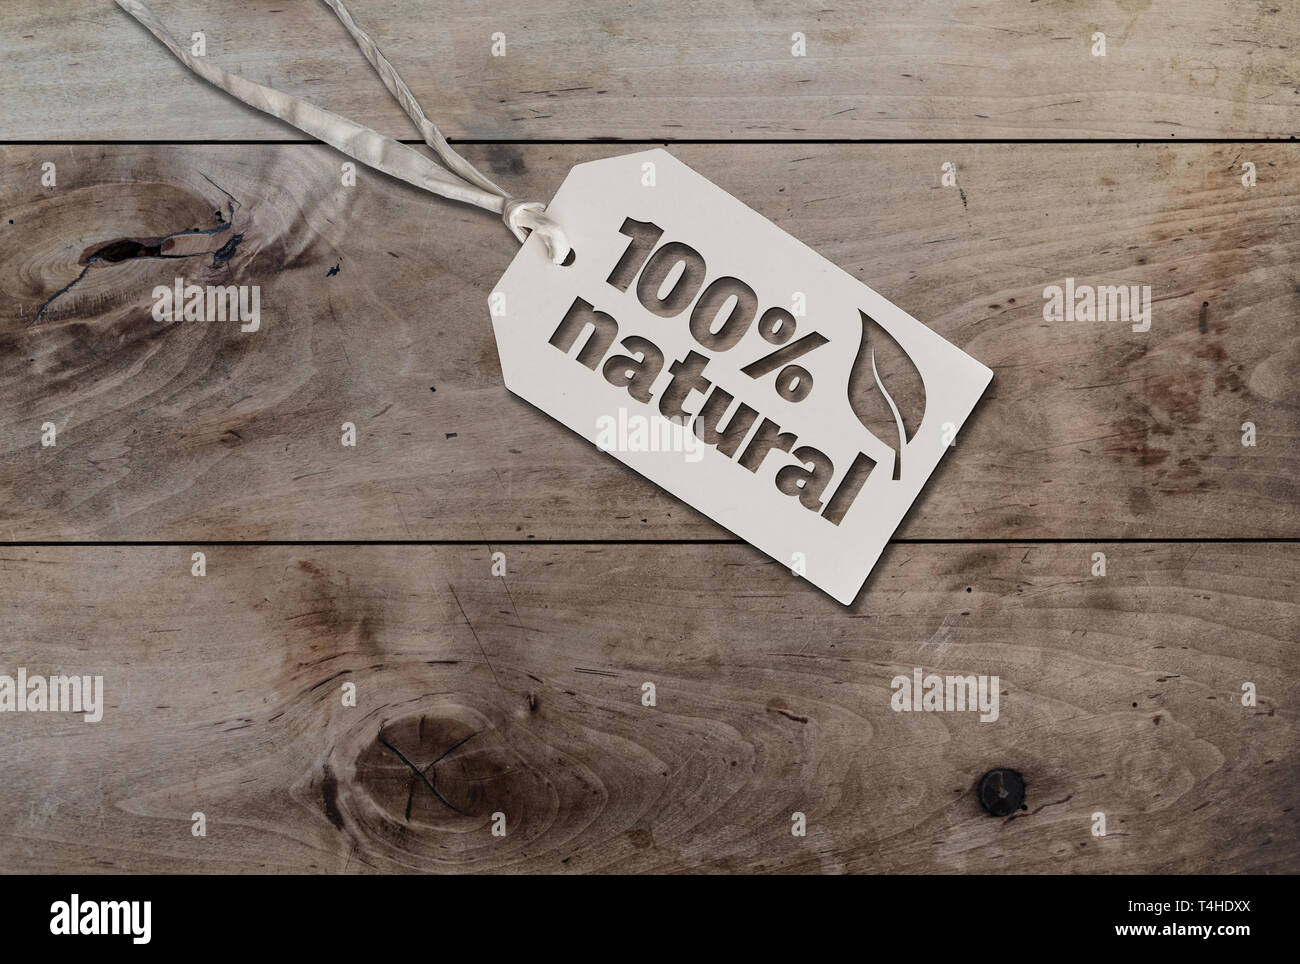 white hang tag cardboard lable with string attached an text 100% natural on rustic wooden table - Stock Image